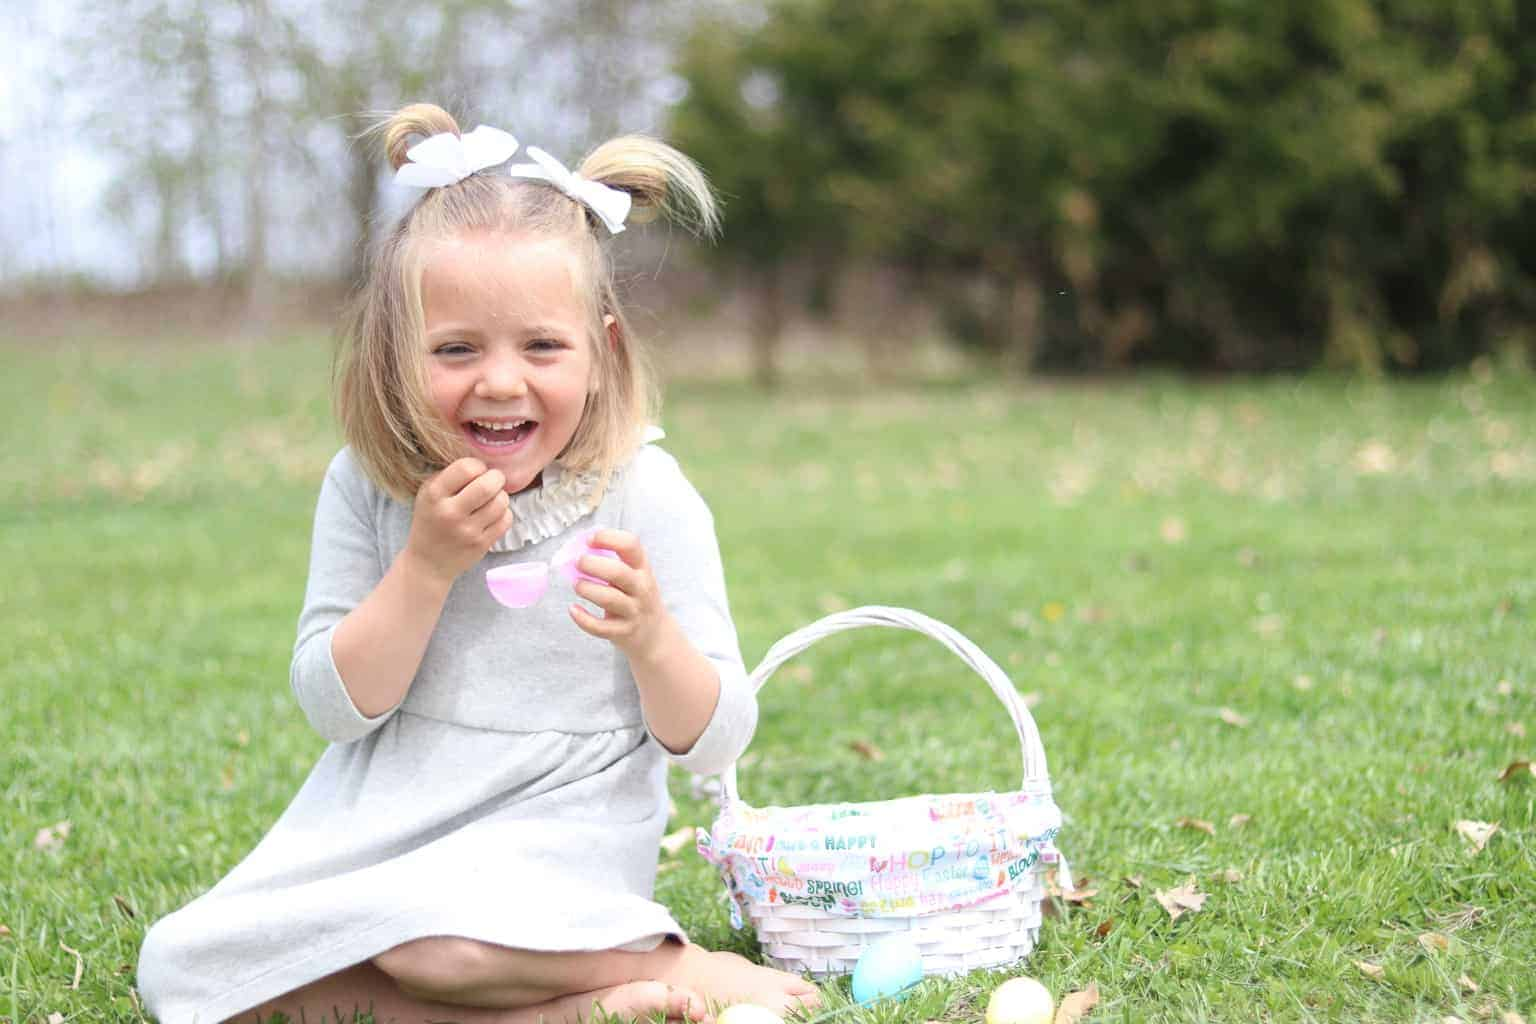 Little girl sitting on grass with an Easter basket by her.